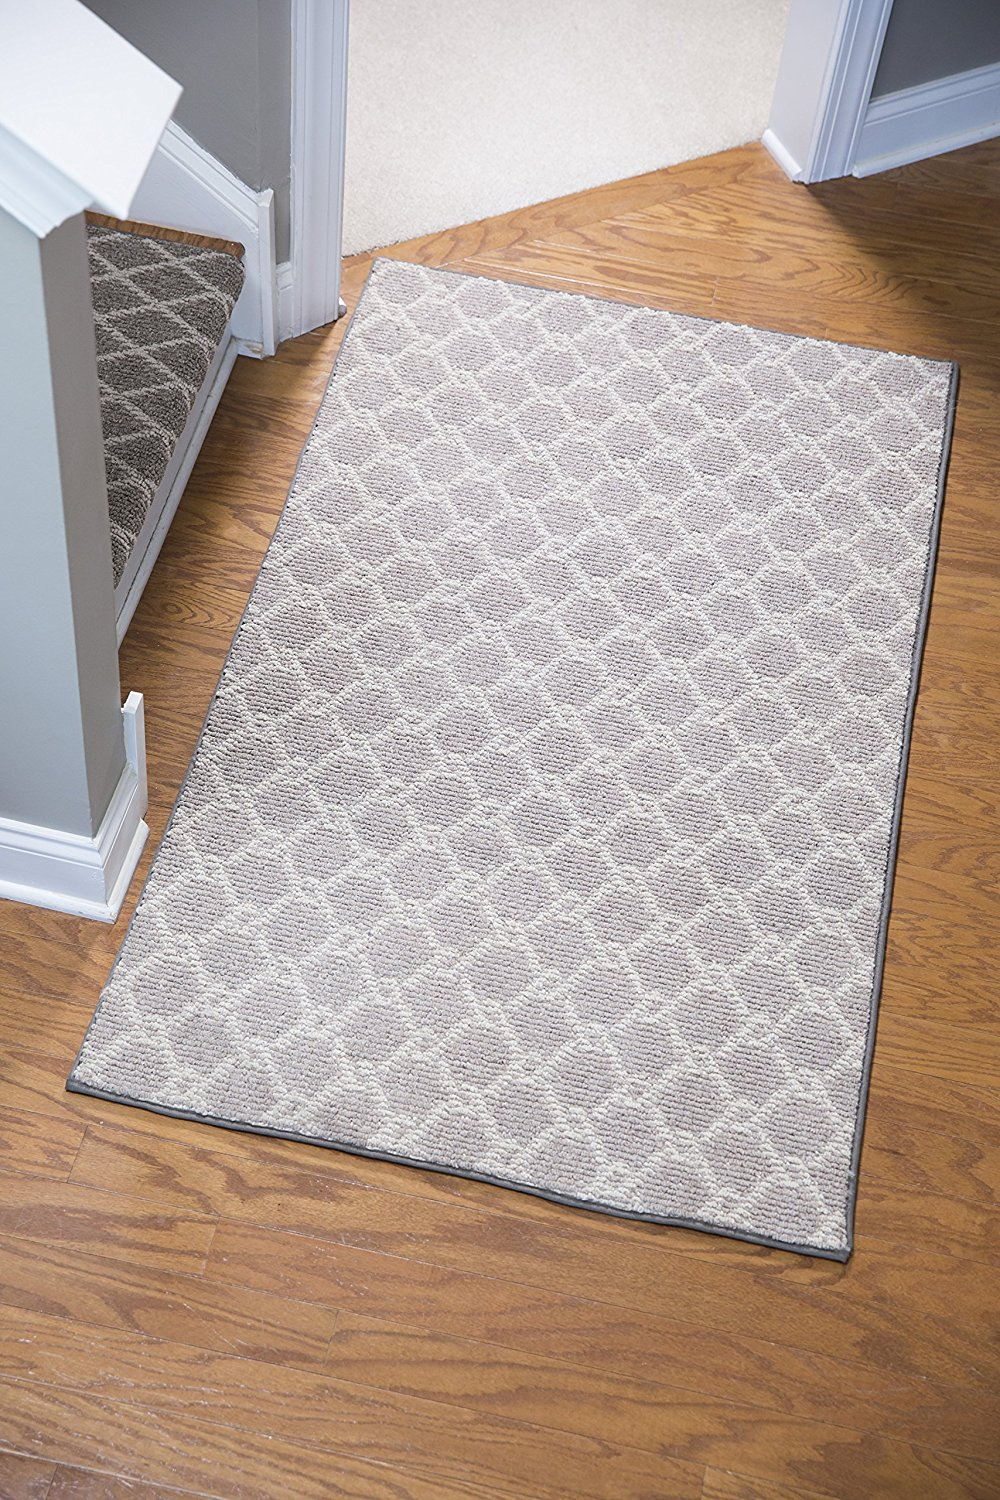 Cheap Rug Runners 3 X 12 Find Rug Runners 3 X 12 Deals On Line At